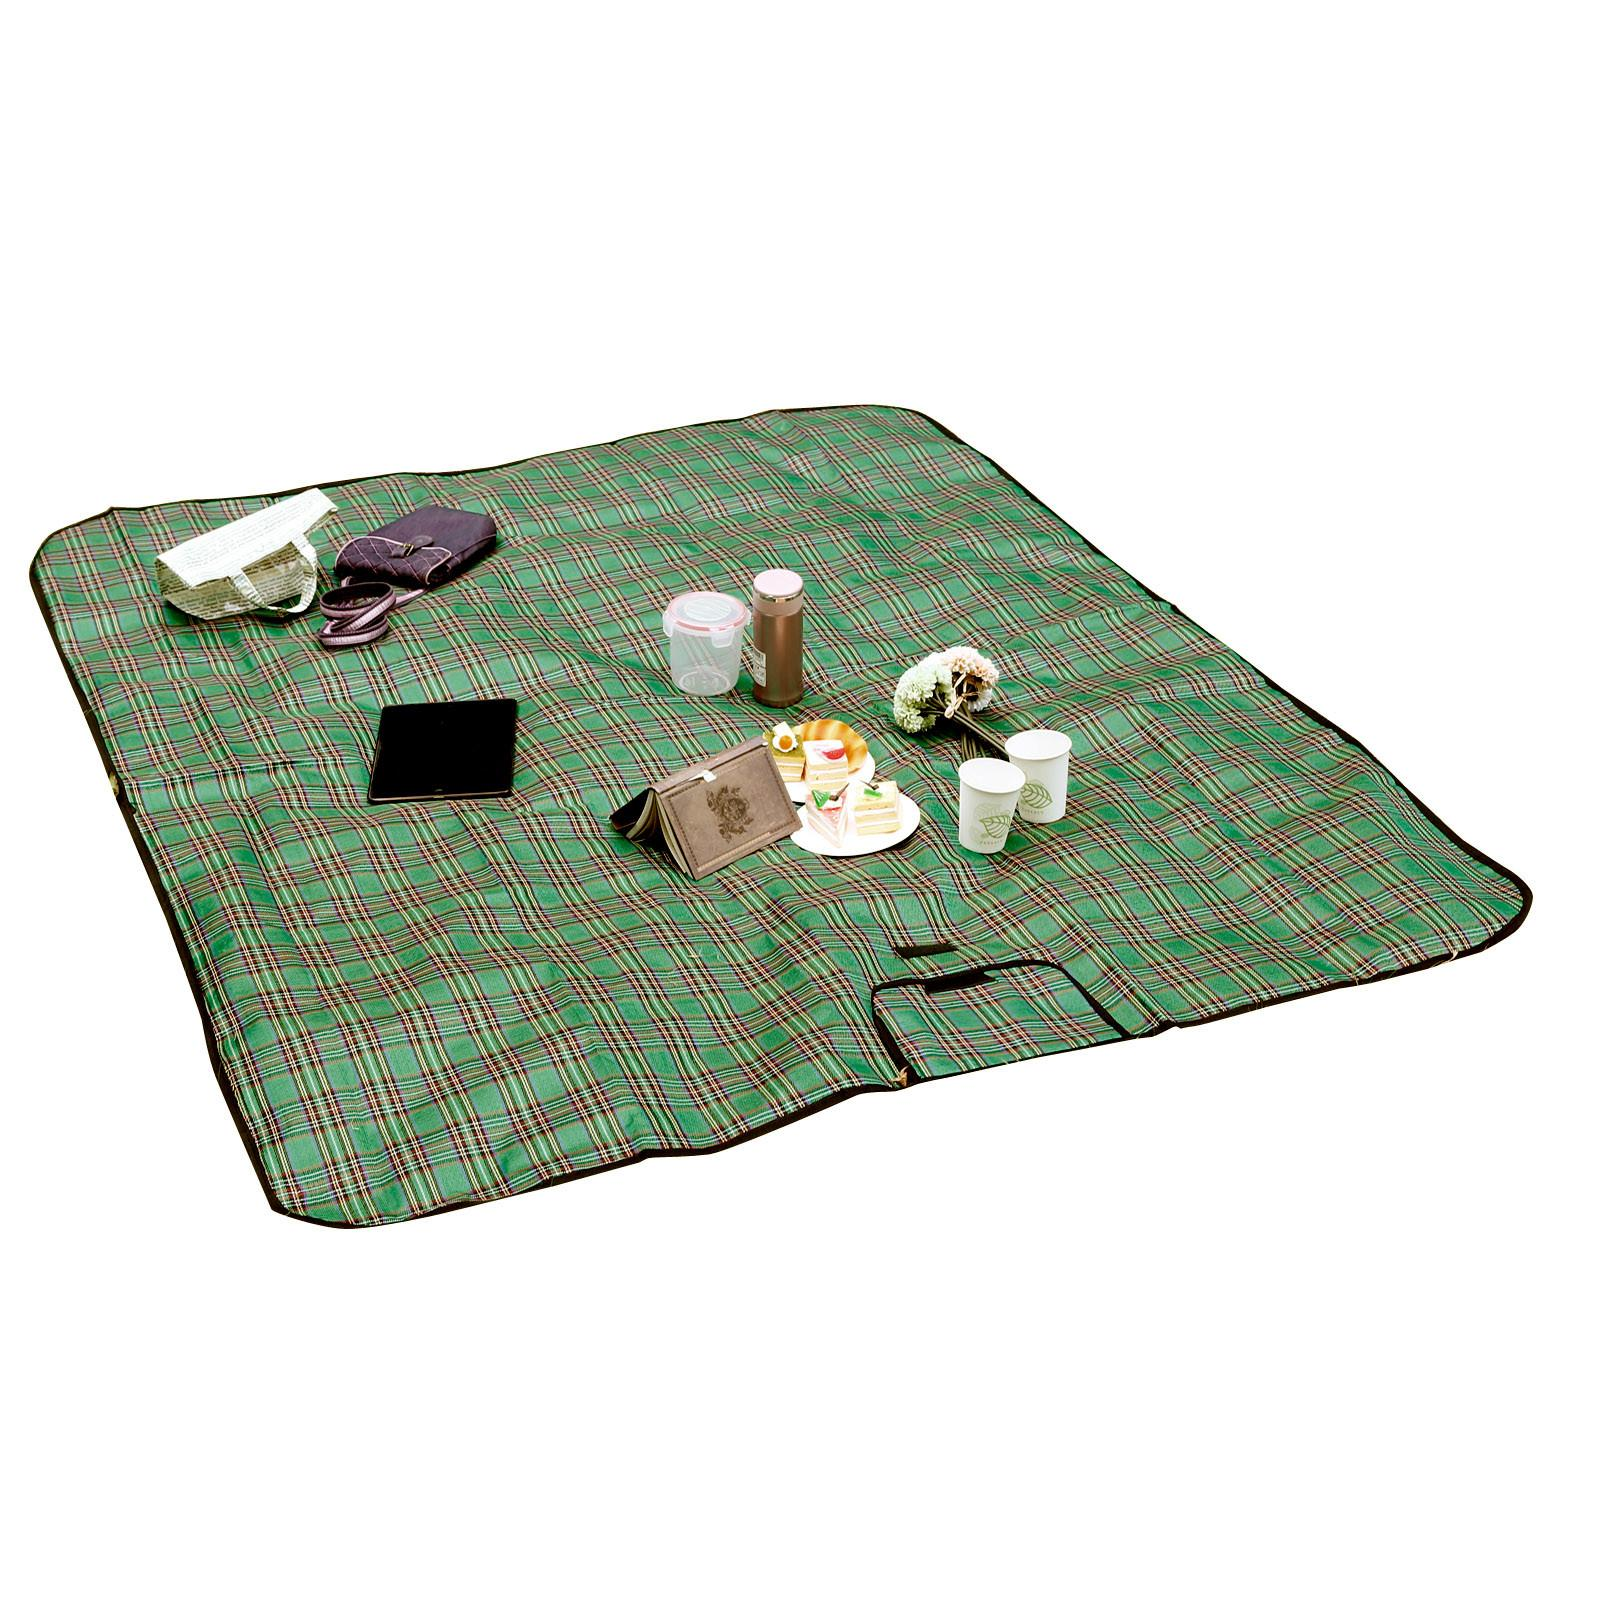 Extra Large Waterproof Picnic Mat Blanket Rug Travel